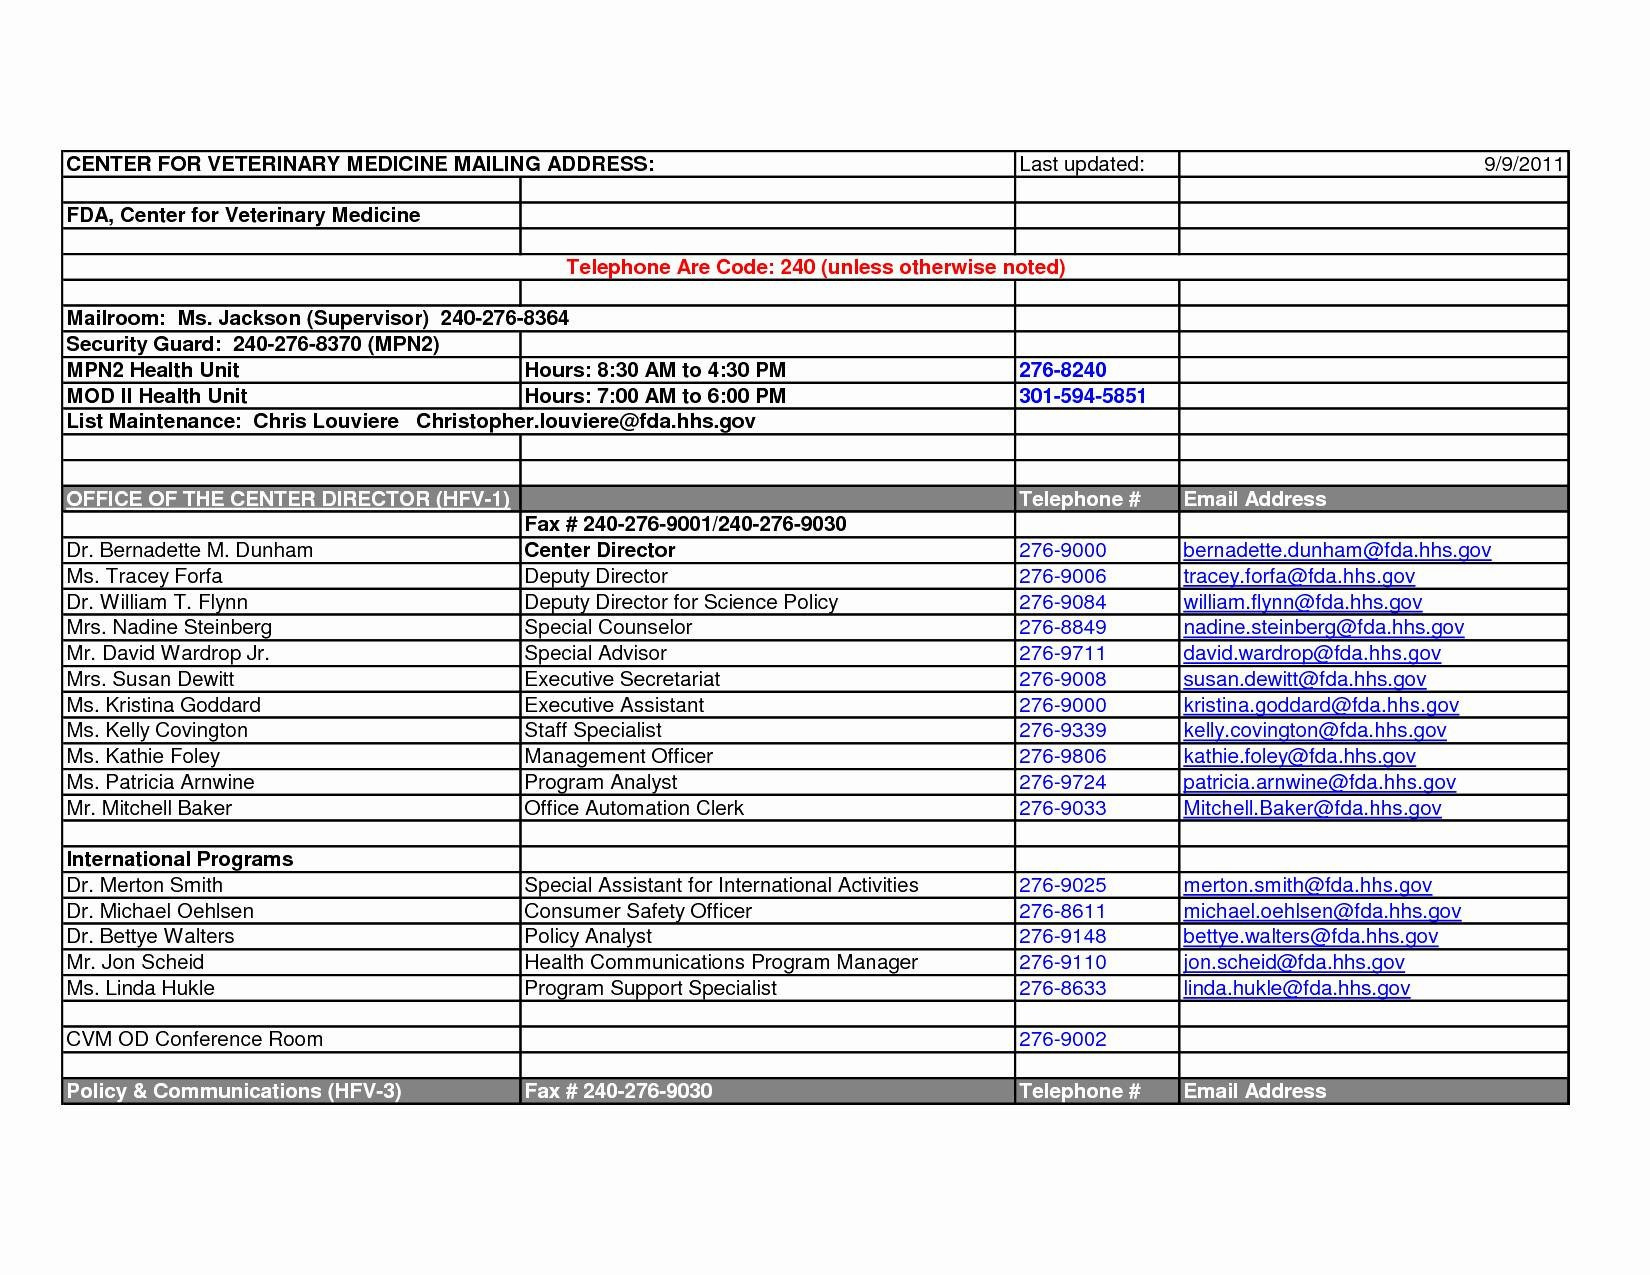 Home Maintenance Schedule Spreadsheet For Home Maintenance Schedule Spreadsheet Lovely Fuel Tax Reporting